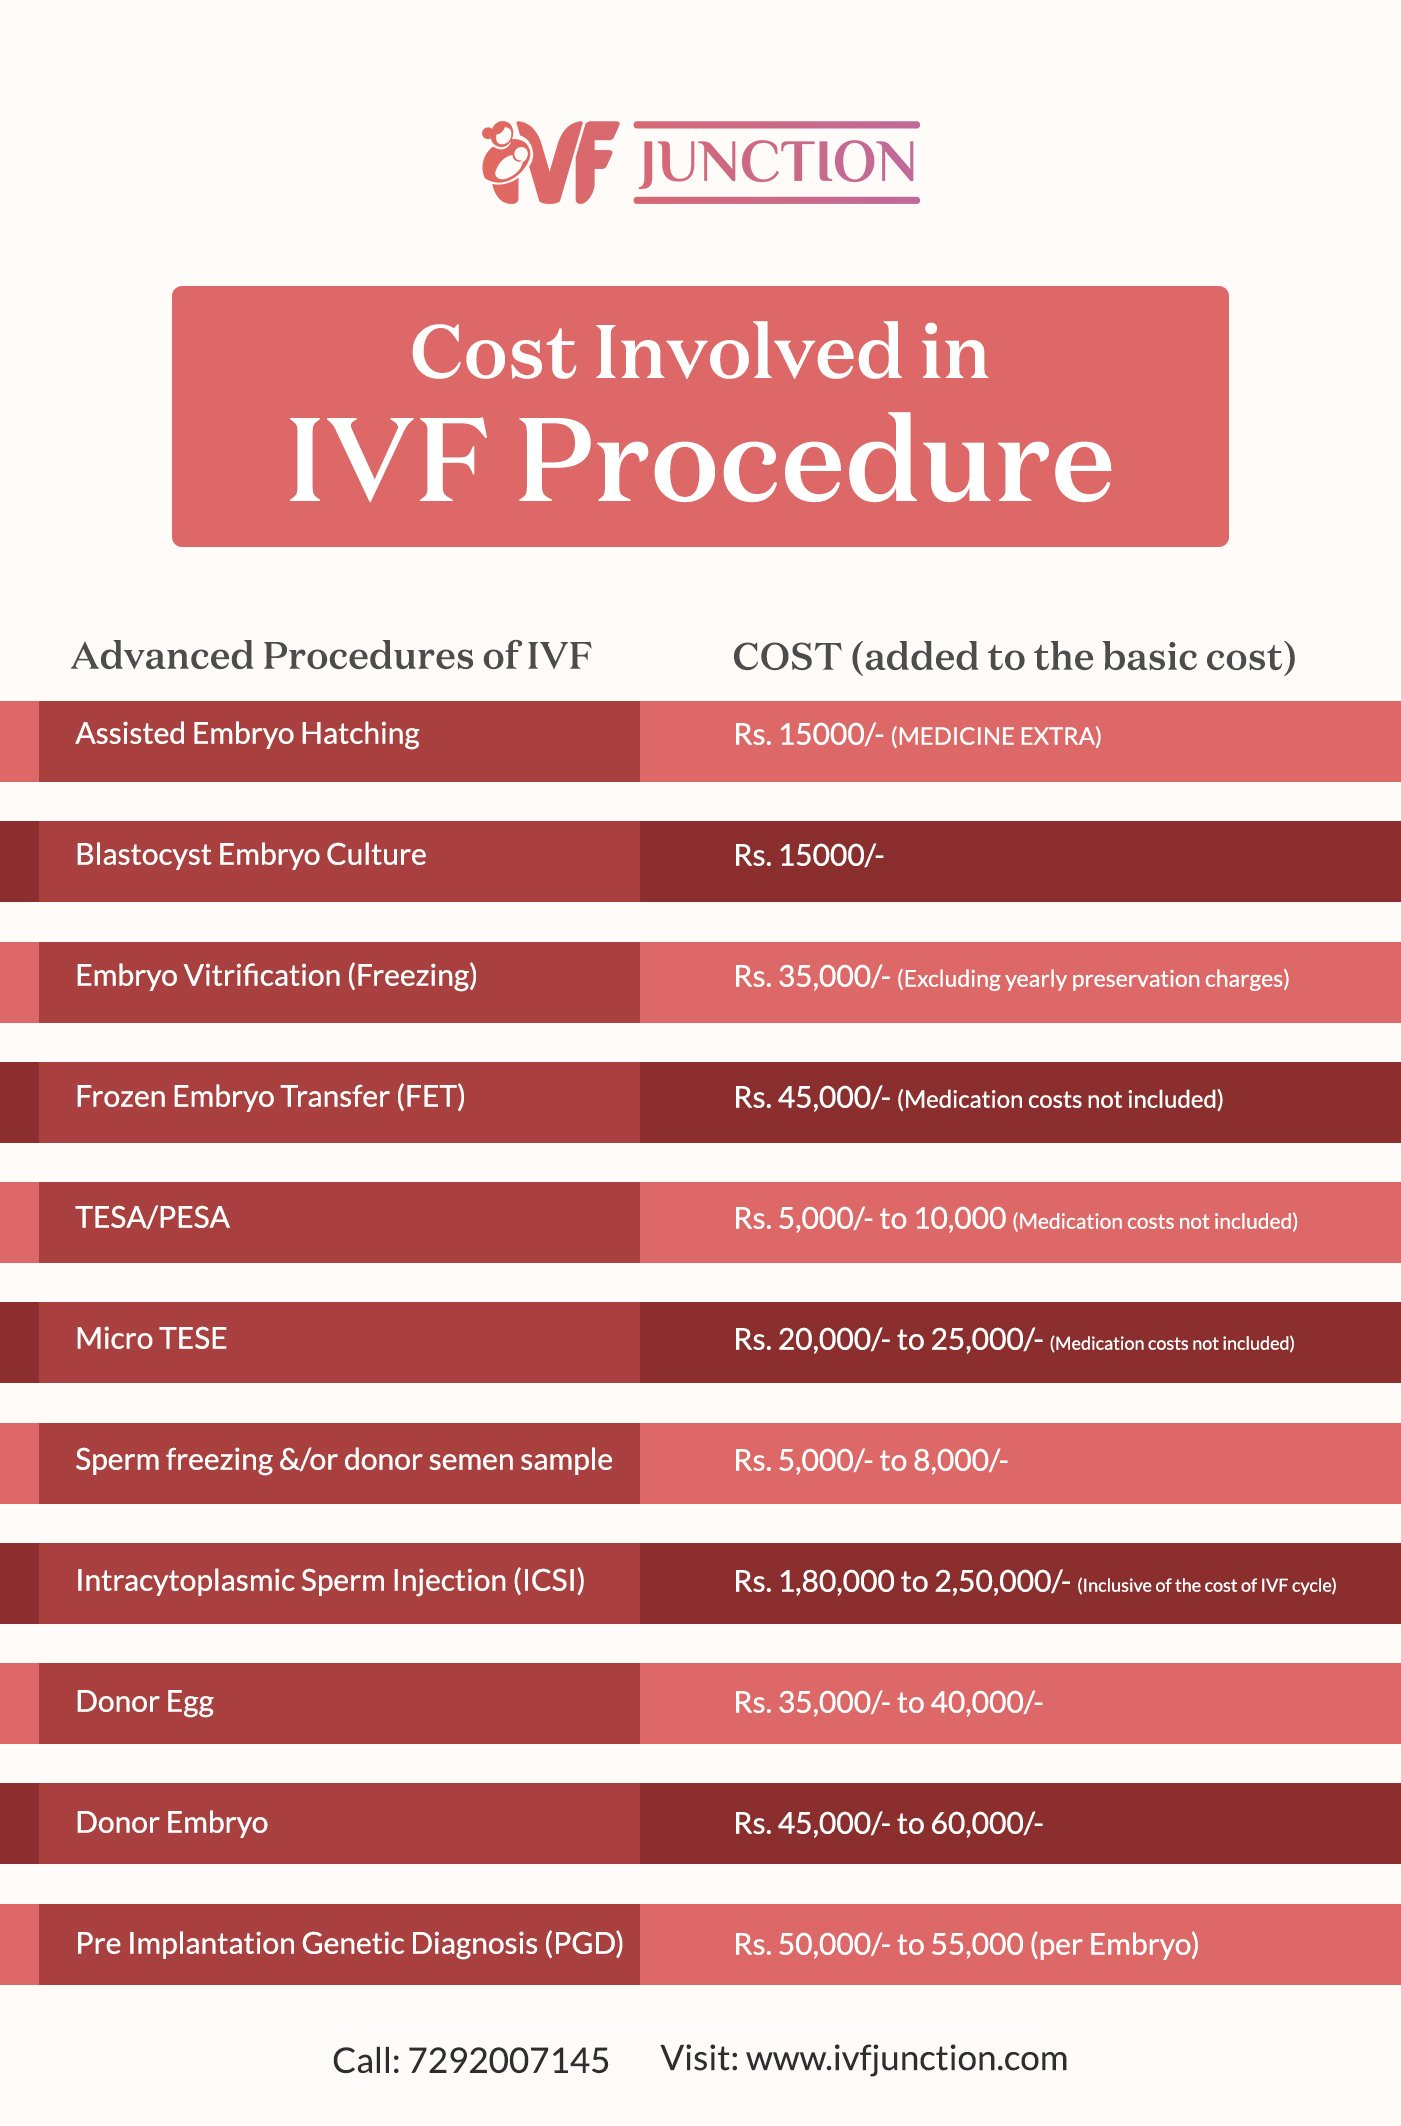 Low Cost IVF Treatment in Delhi & Gurgaon: All You Need to Know